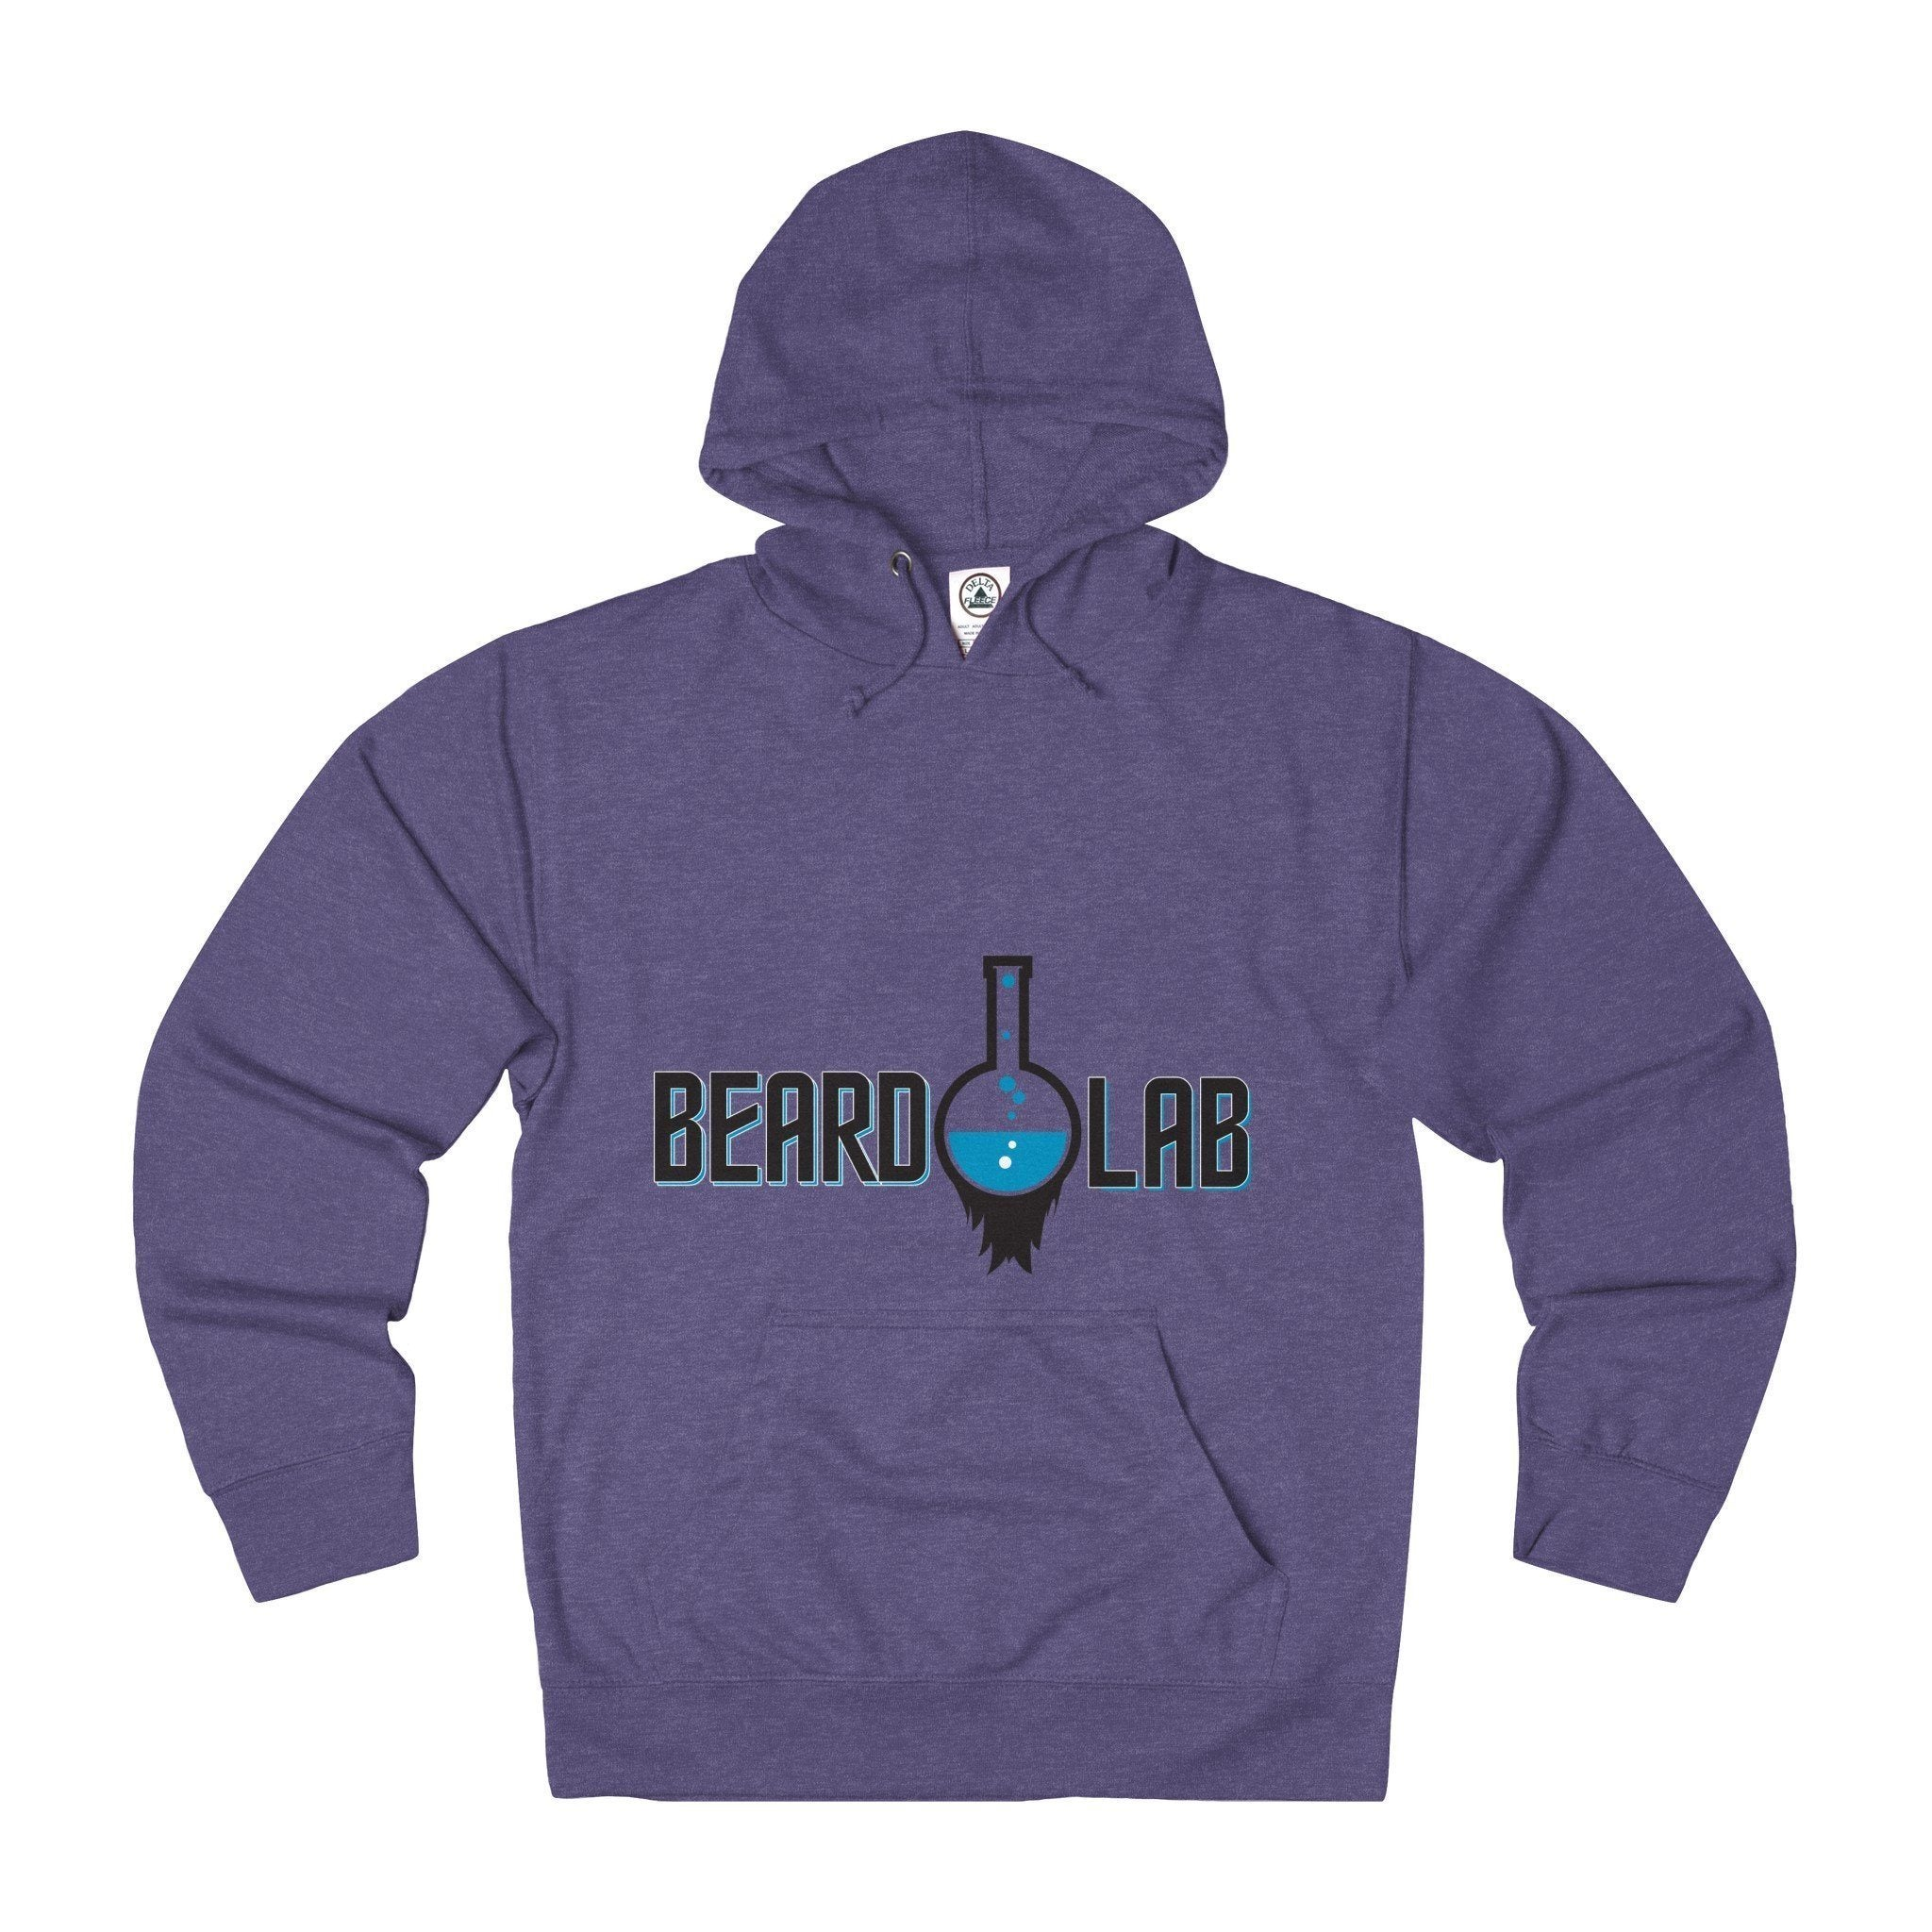 Beard Lab Unisex French Terry Hoodie